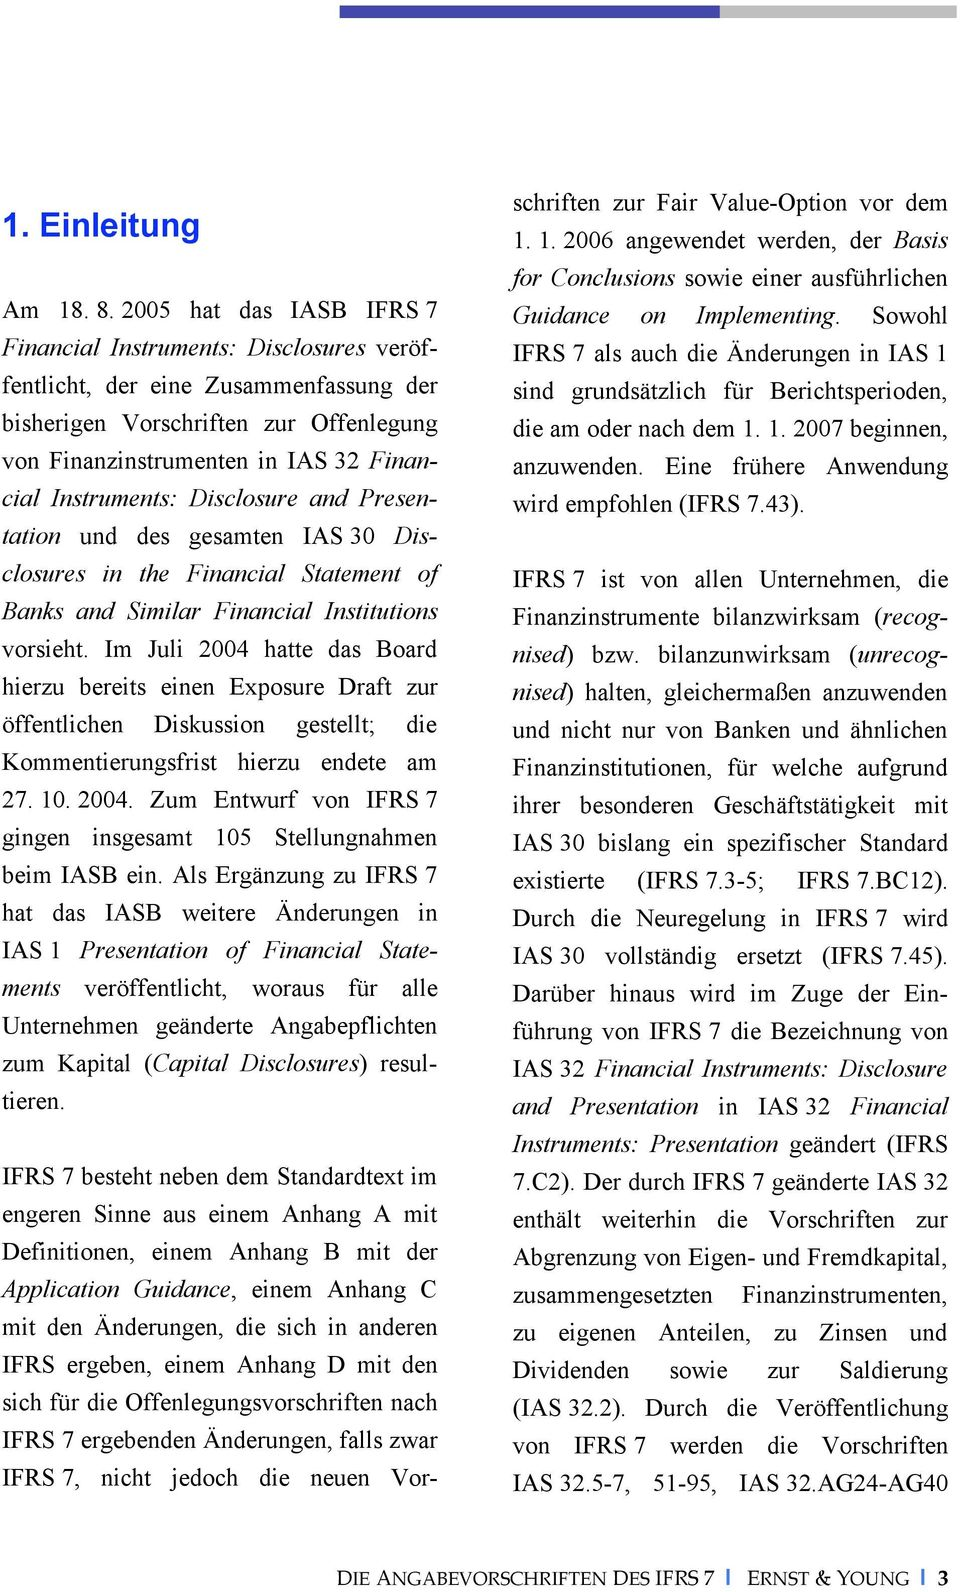 Instruments: Disclosure and Presentation und des gesamten IAS 30 Disclosures in the Financial Statement of Banks and Similar Financial Institutions vorsieht.